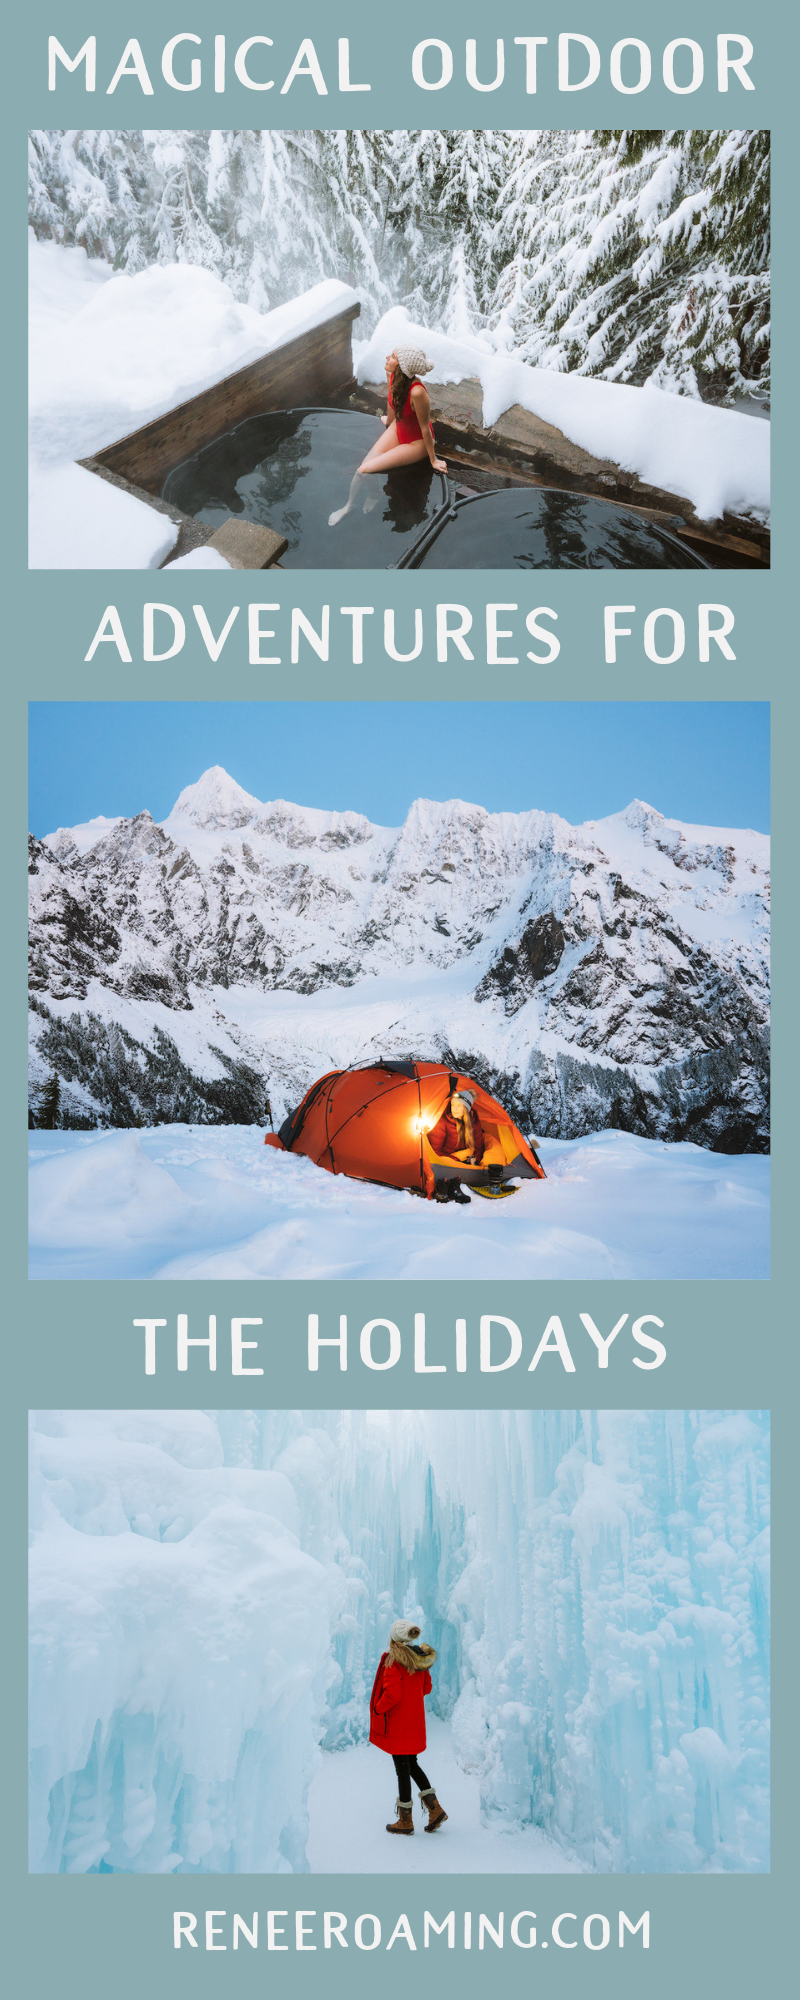 7 Magical Winter Outdoor Adventures For The Holidays